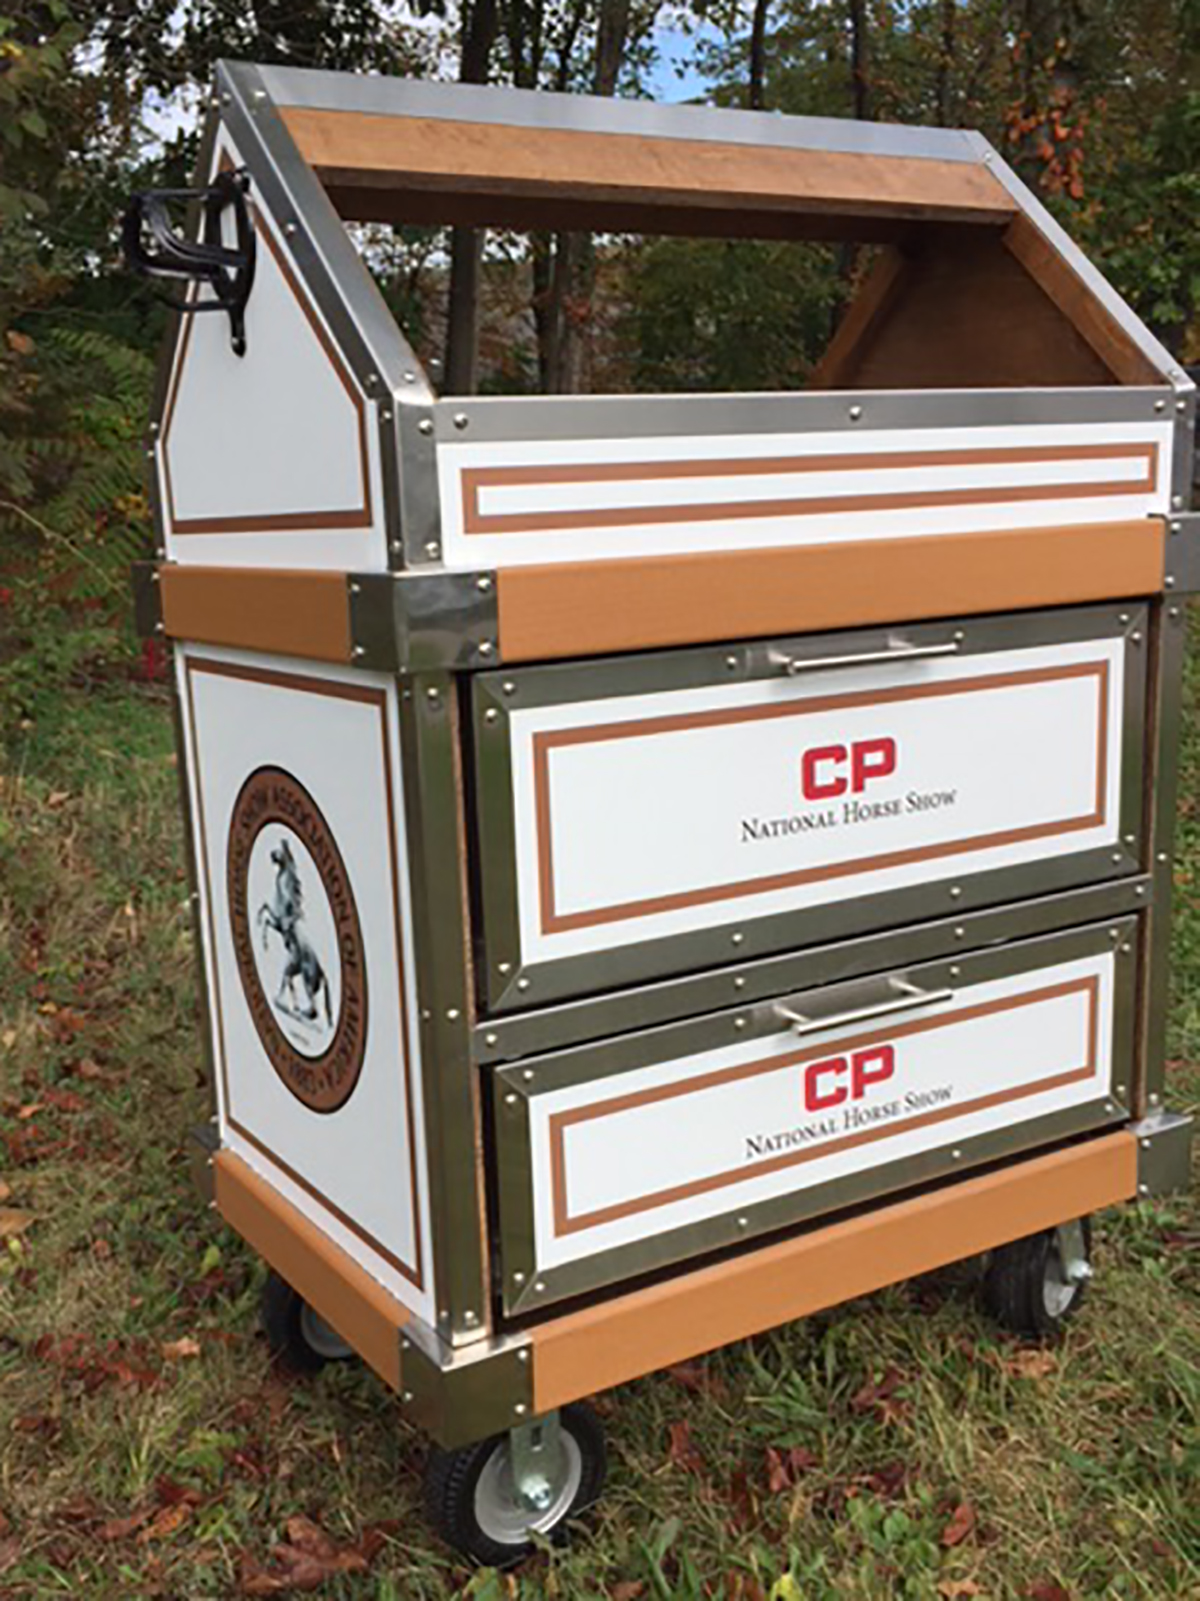 Top Jock Tack Boxes Heads to World Equestrian Center and National Horse Show This Month